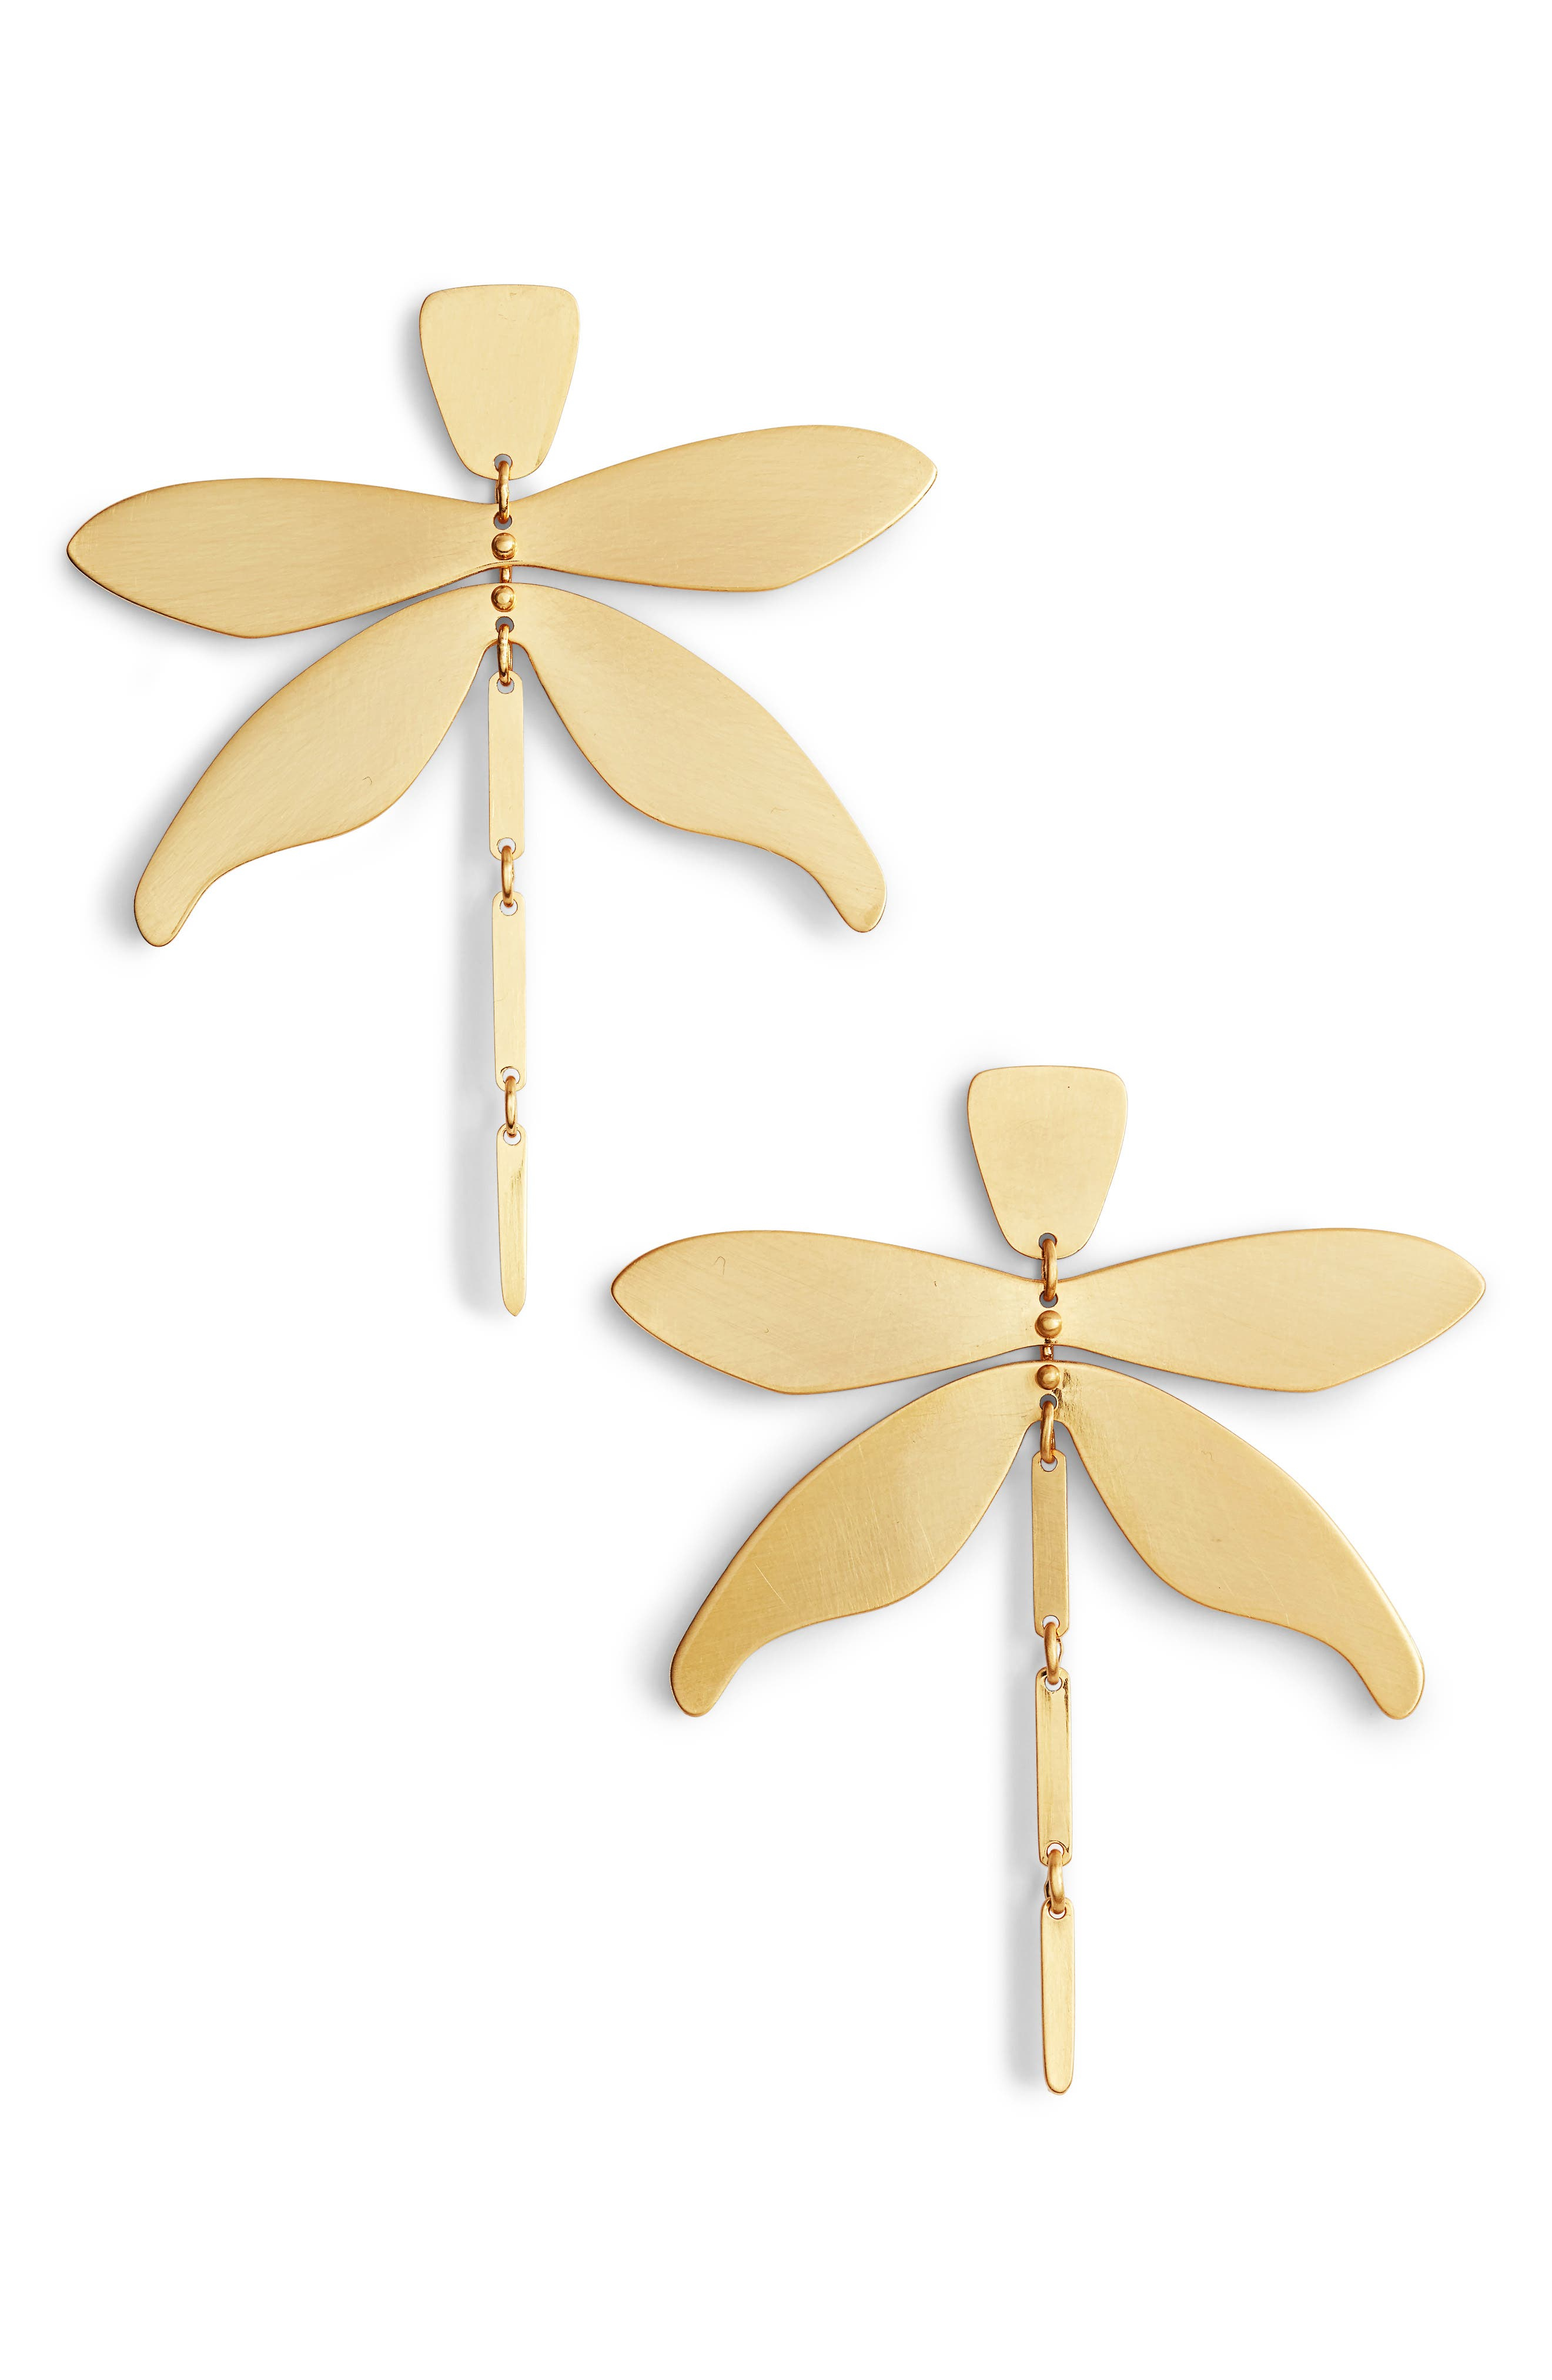 Articulated Dragonfly Earrings,                         Main,                         color, Brass